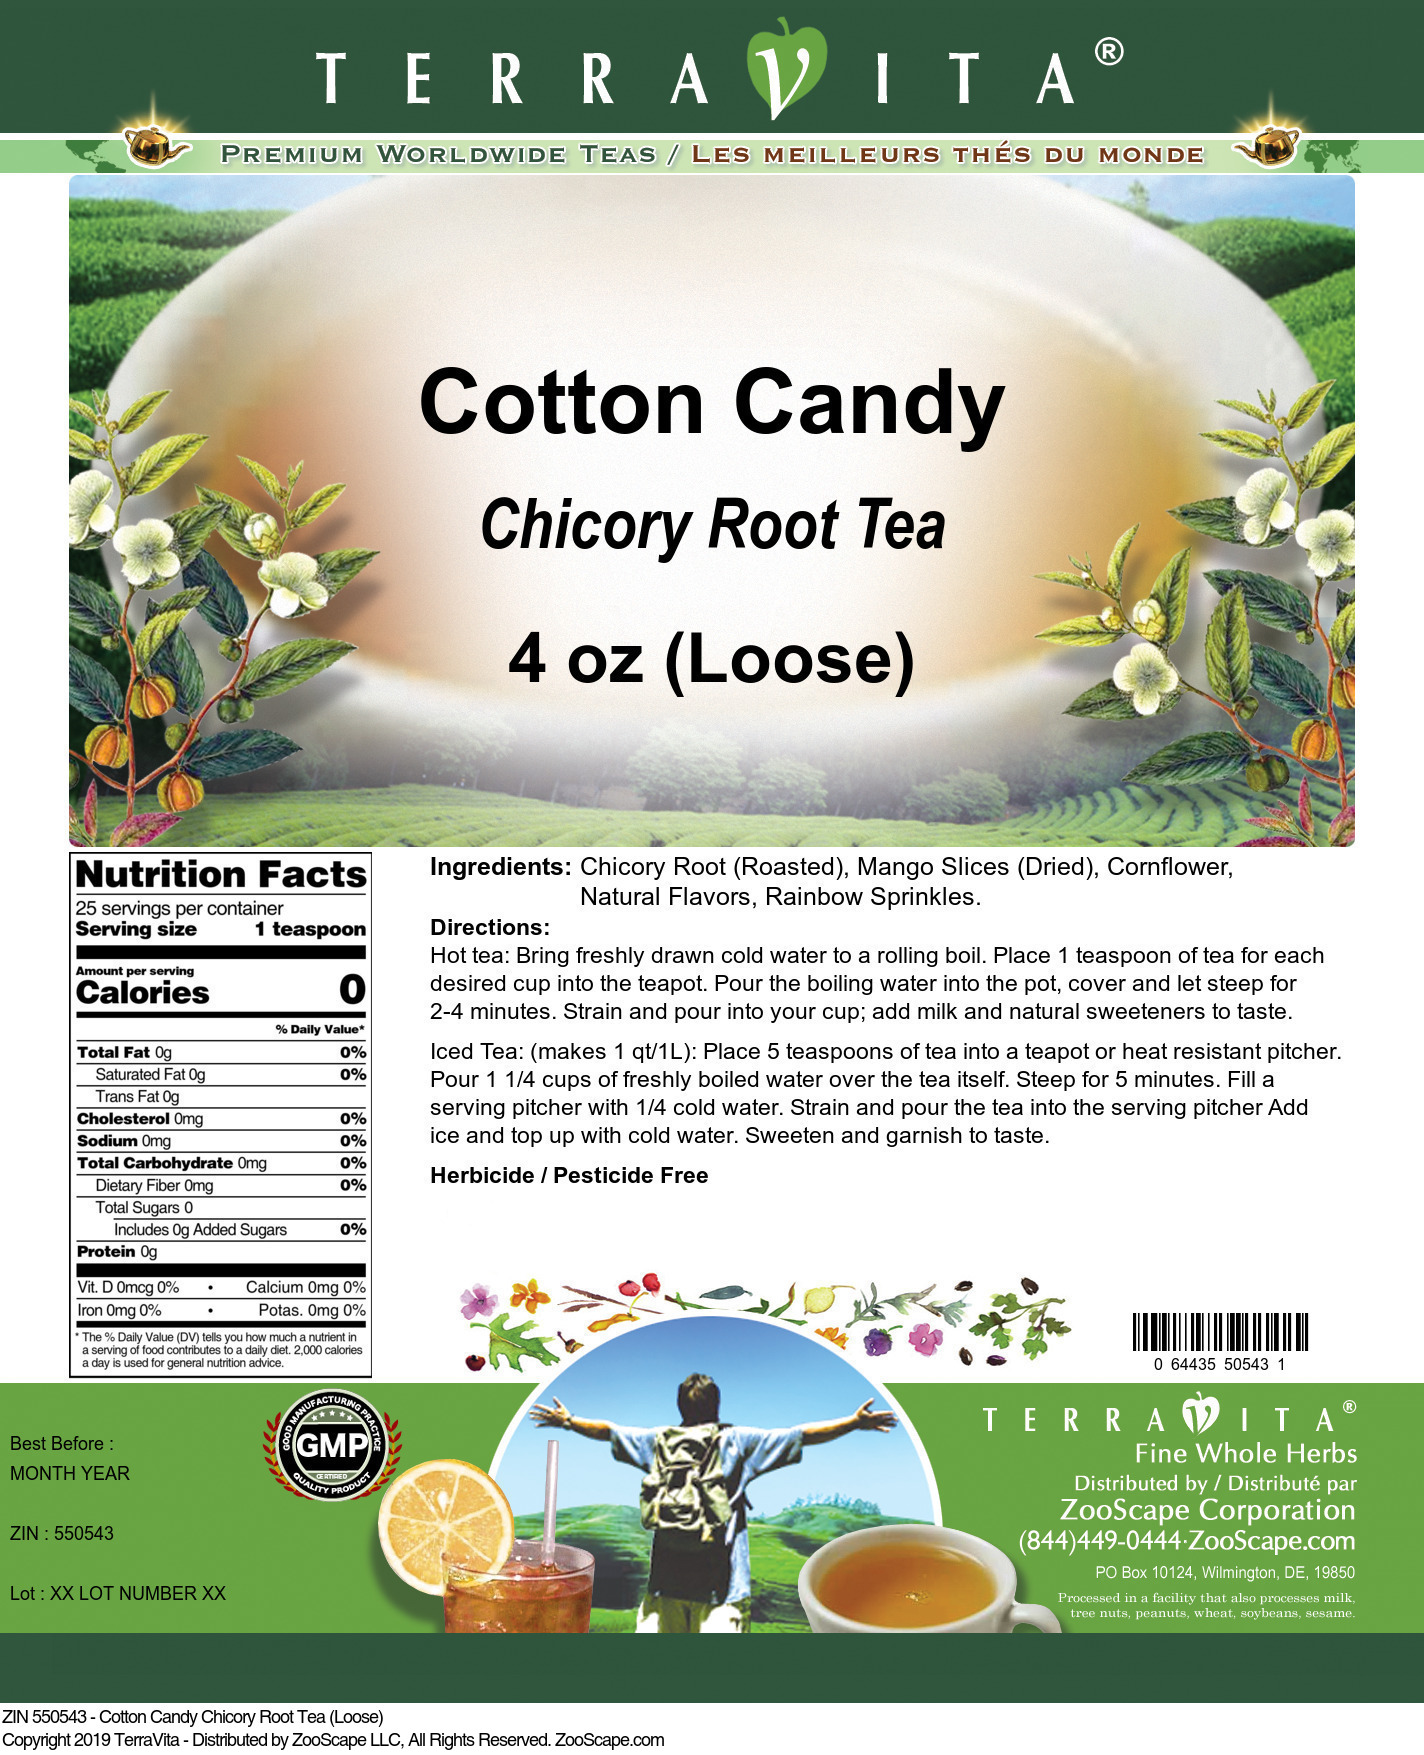 Cotton Candy Chicory Root